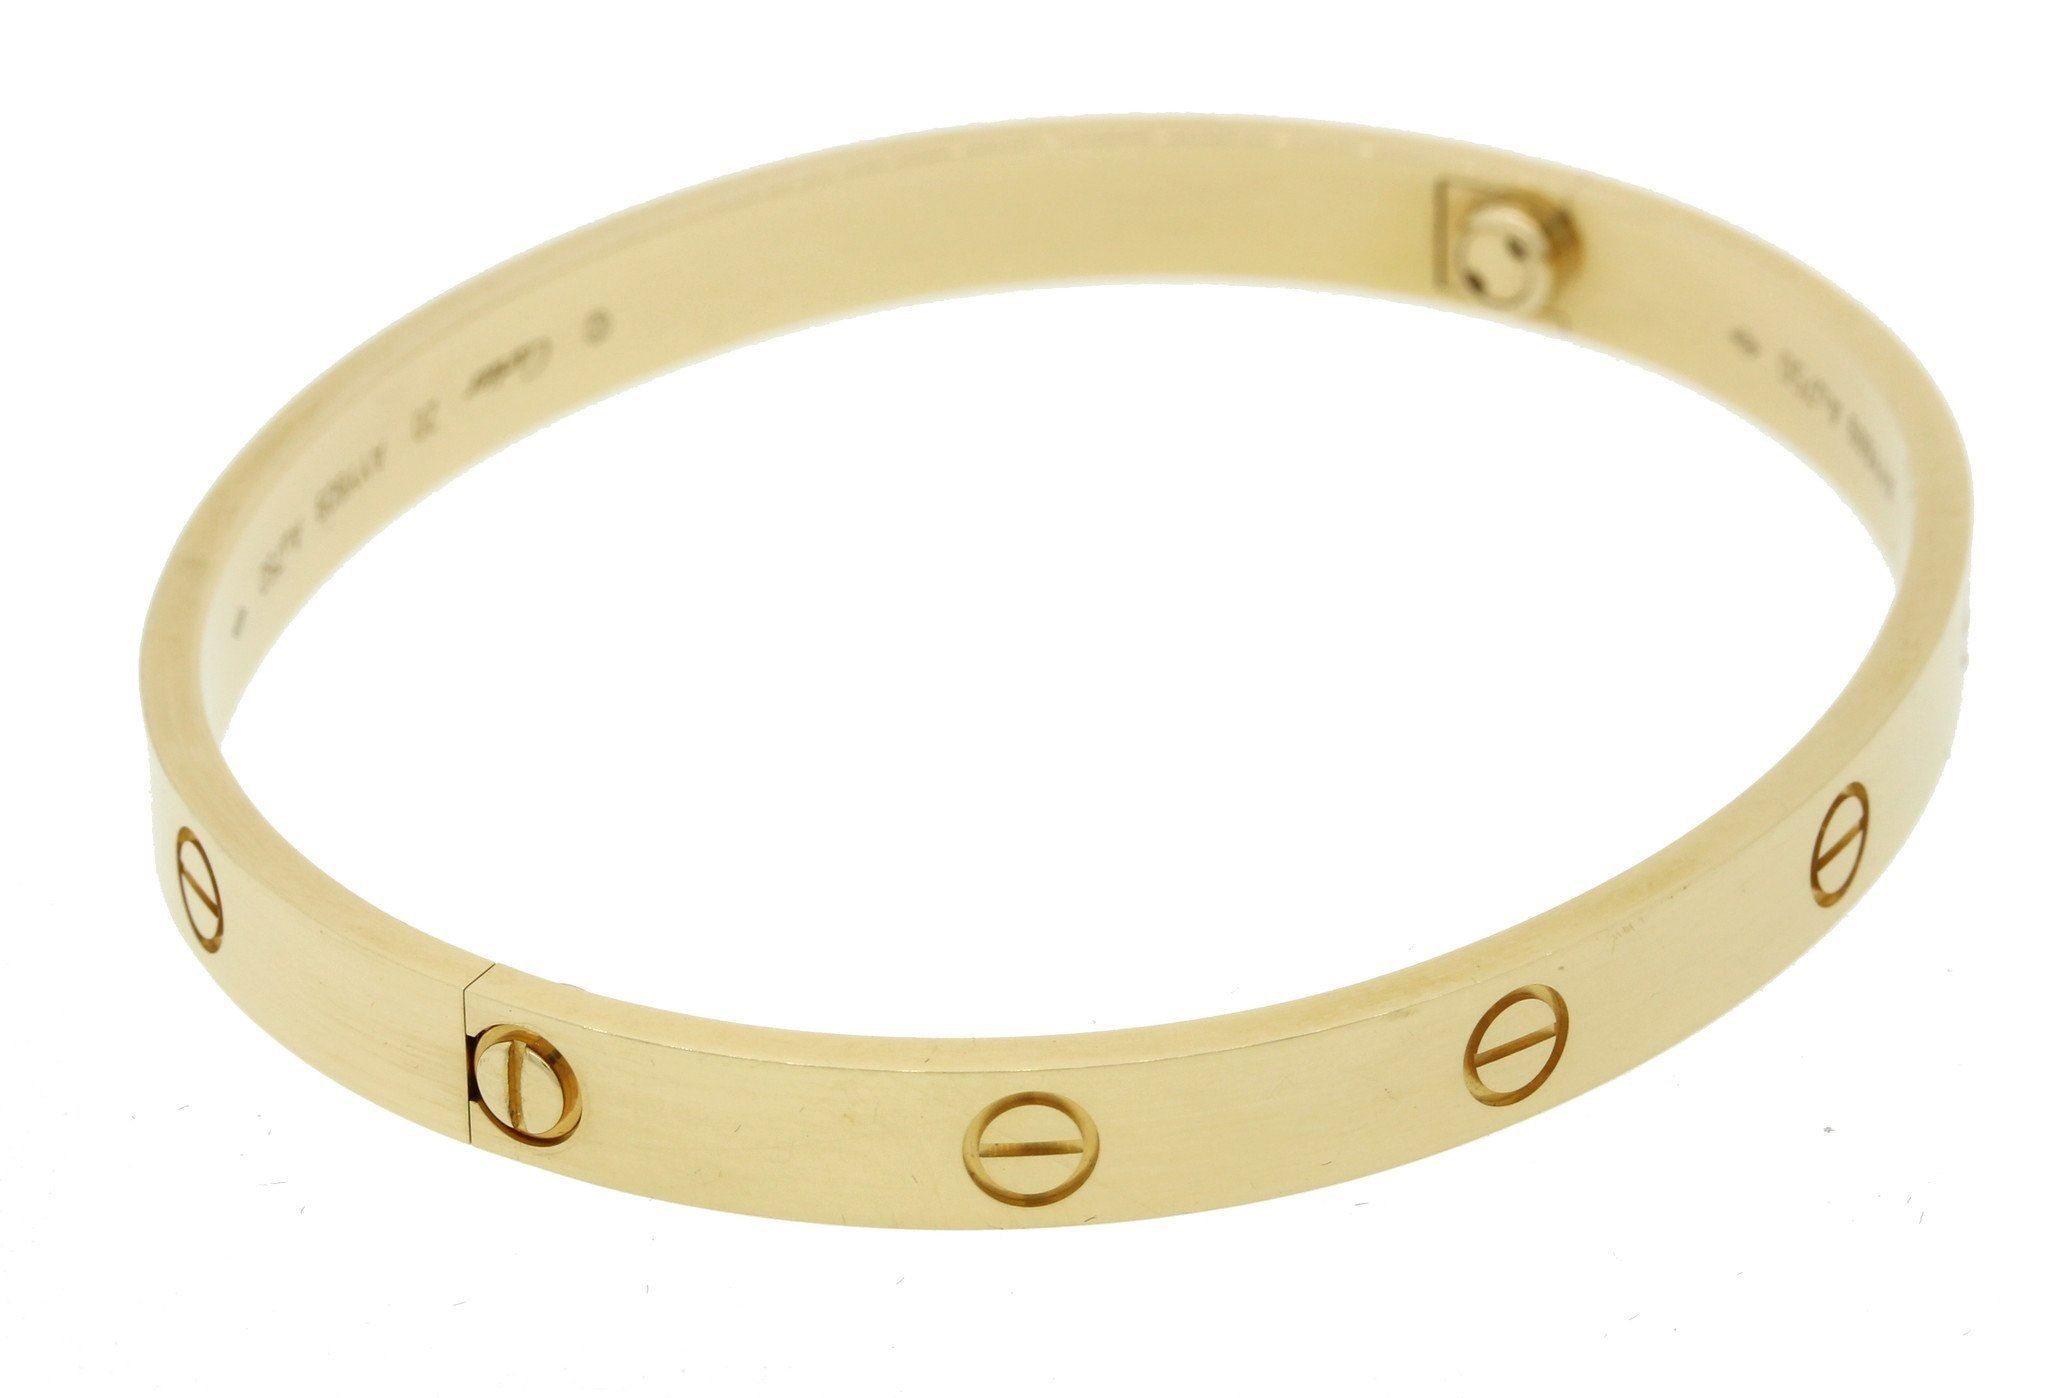 2019 Cartier 18k Yellow Gold New Style Screw Love Bangle Bracelet Sz 20 B+P